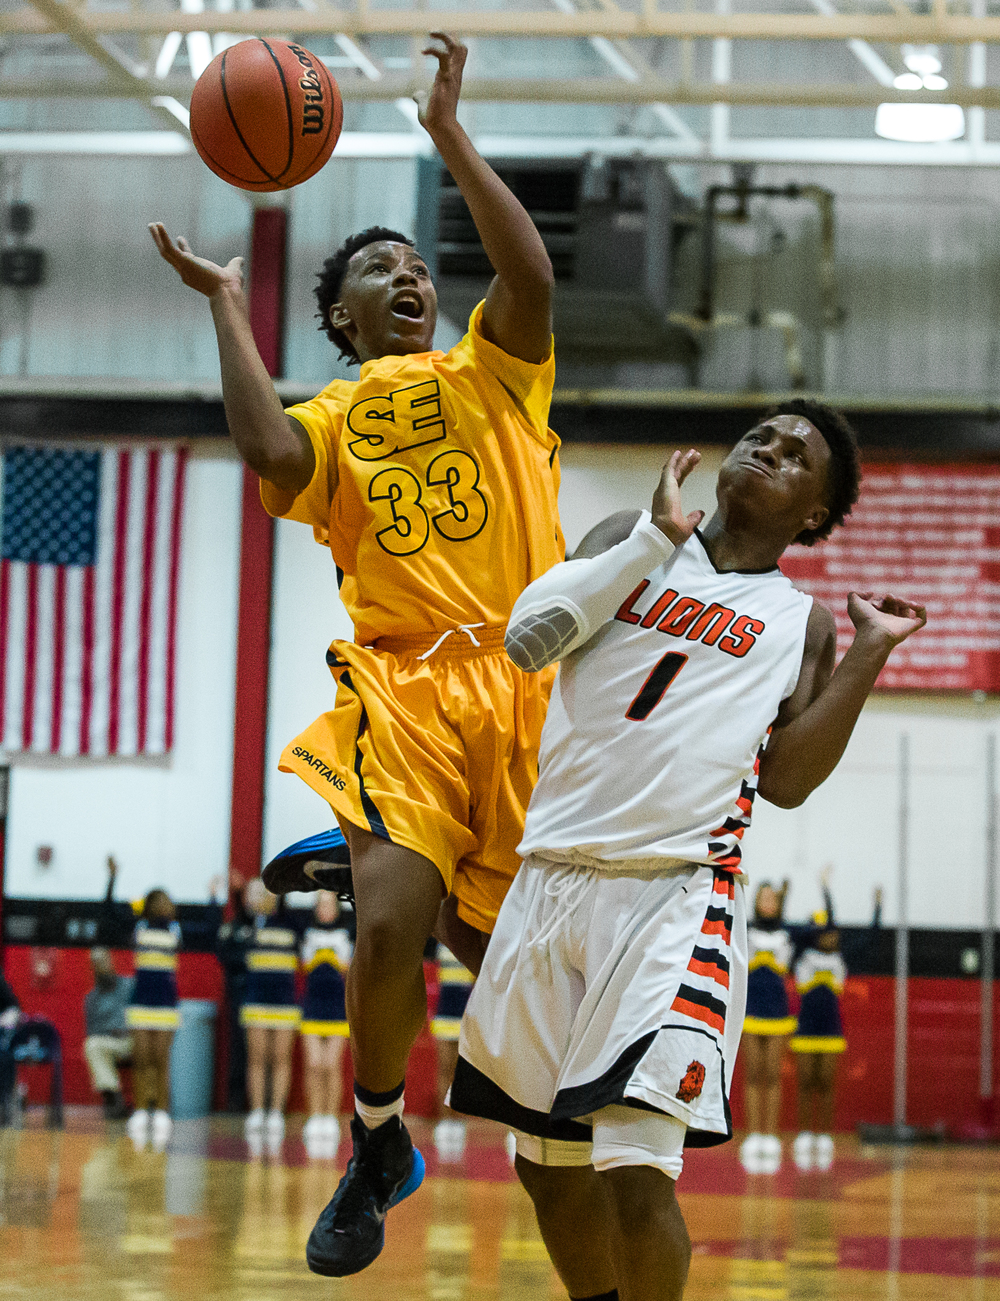 Lanphier's Yaakema Rose (1) picks up his third foul as Southeast's Mark Johnson (33) tries to go up for a shot in the first half during the Class 3A Springfield Regional title game at the Willard Duey Gymnasium, Friday, March 6, 2015, in Springfield, Ill. Justin L. Fowler/The State Journal-Register